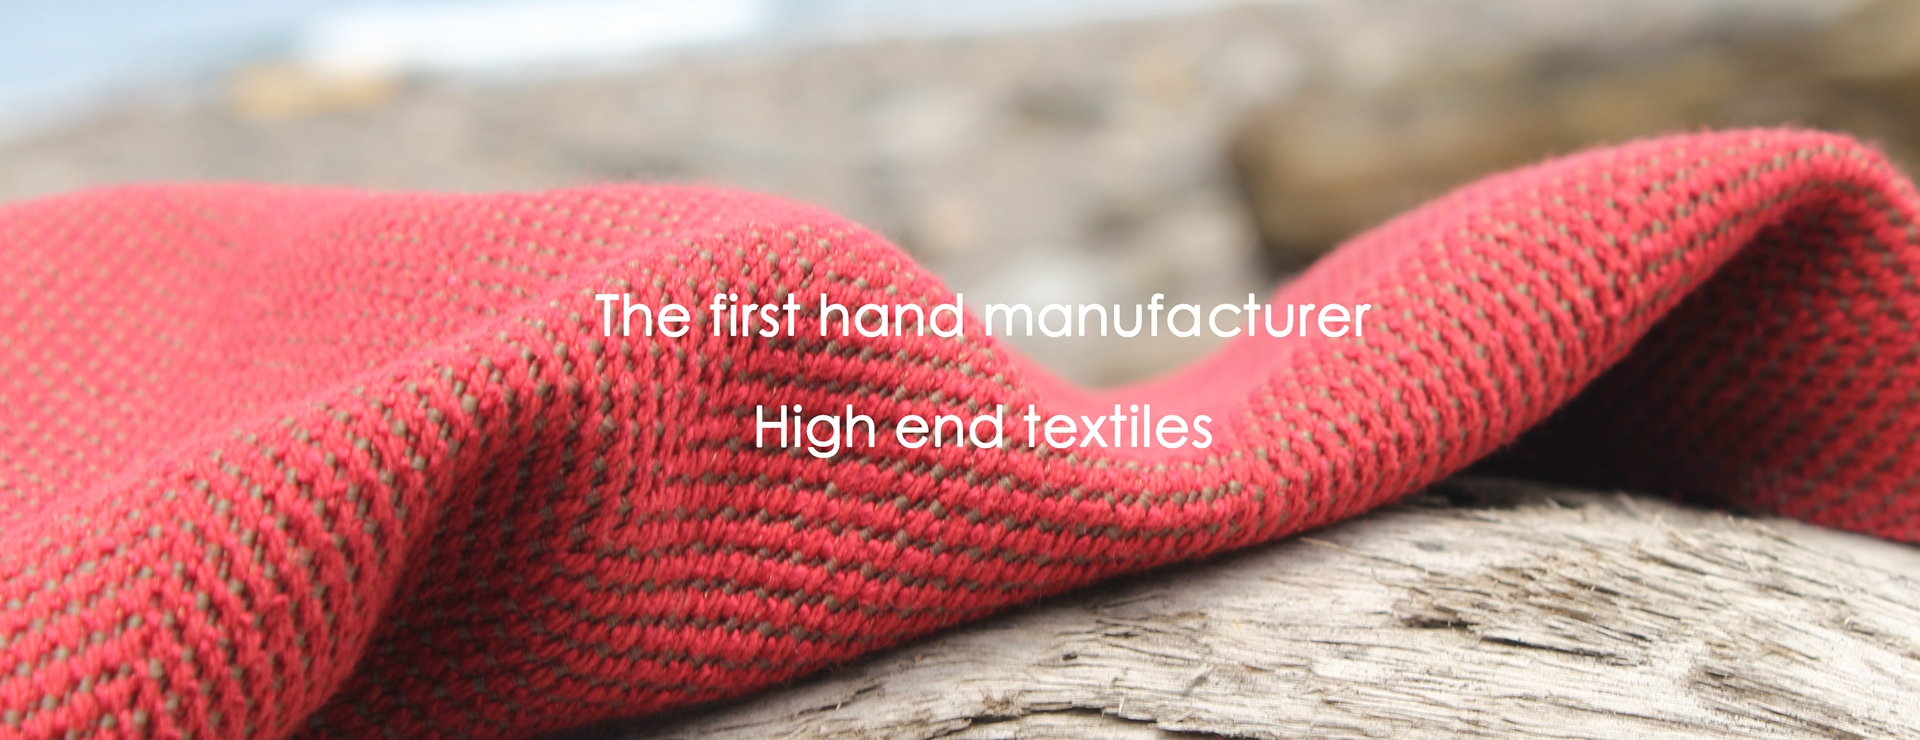 Kuanging Industrial Co., Ltd. - Upholstery